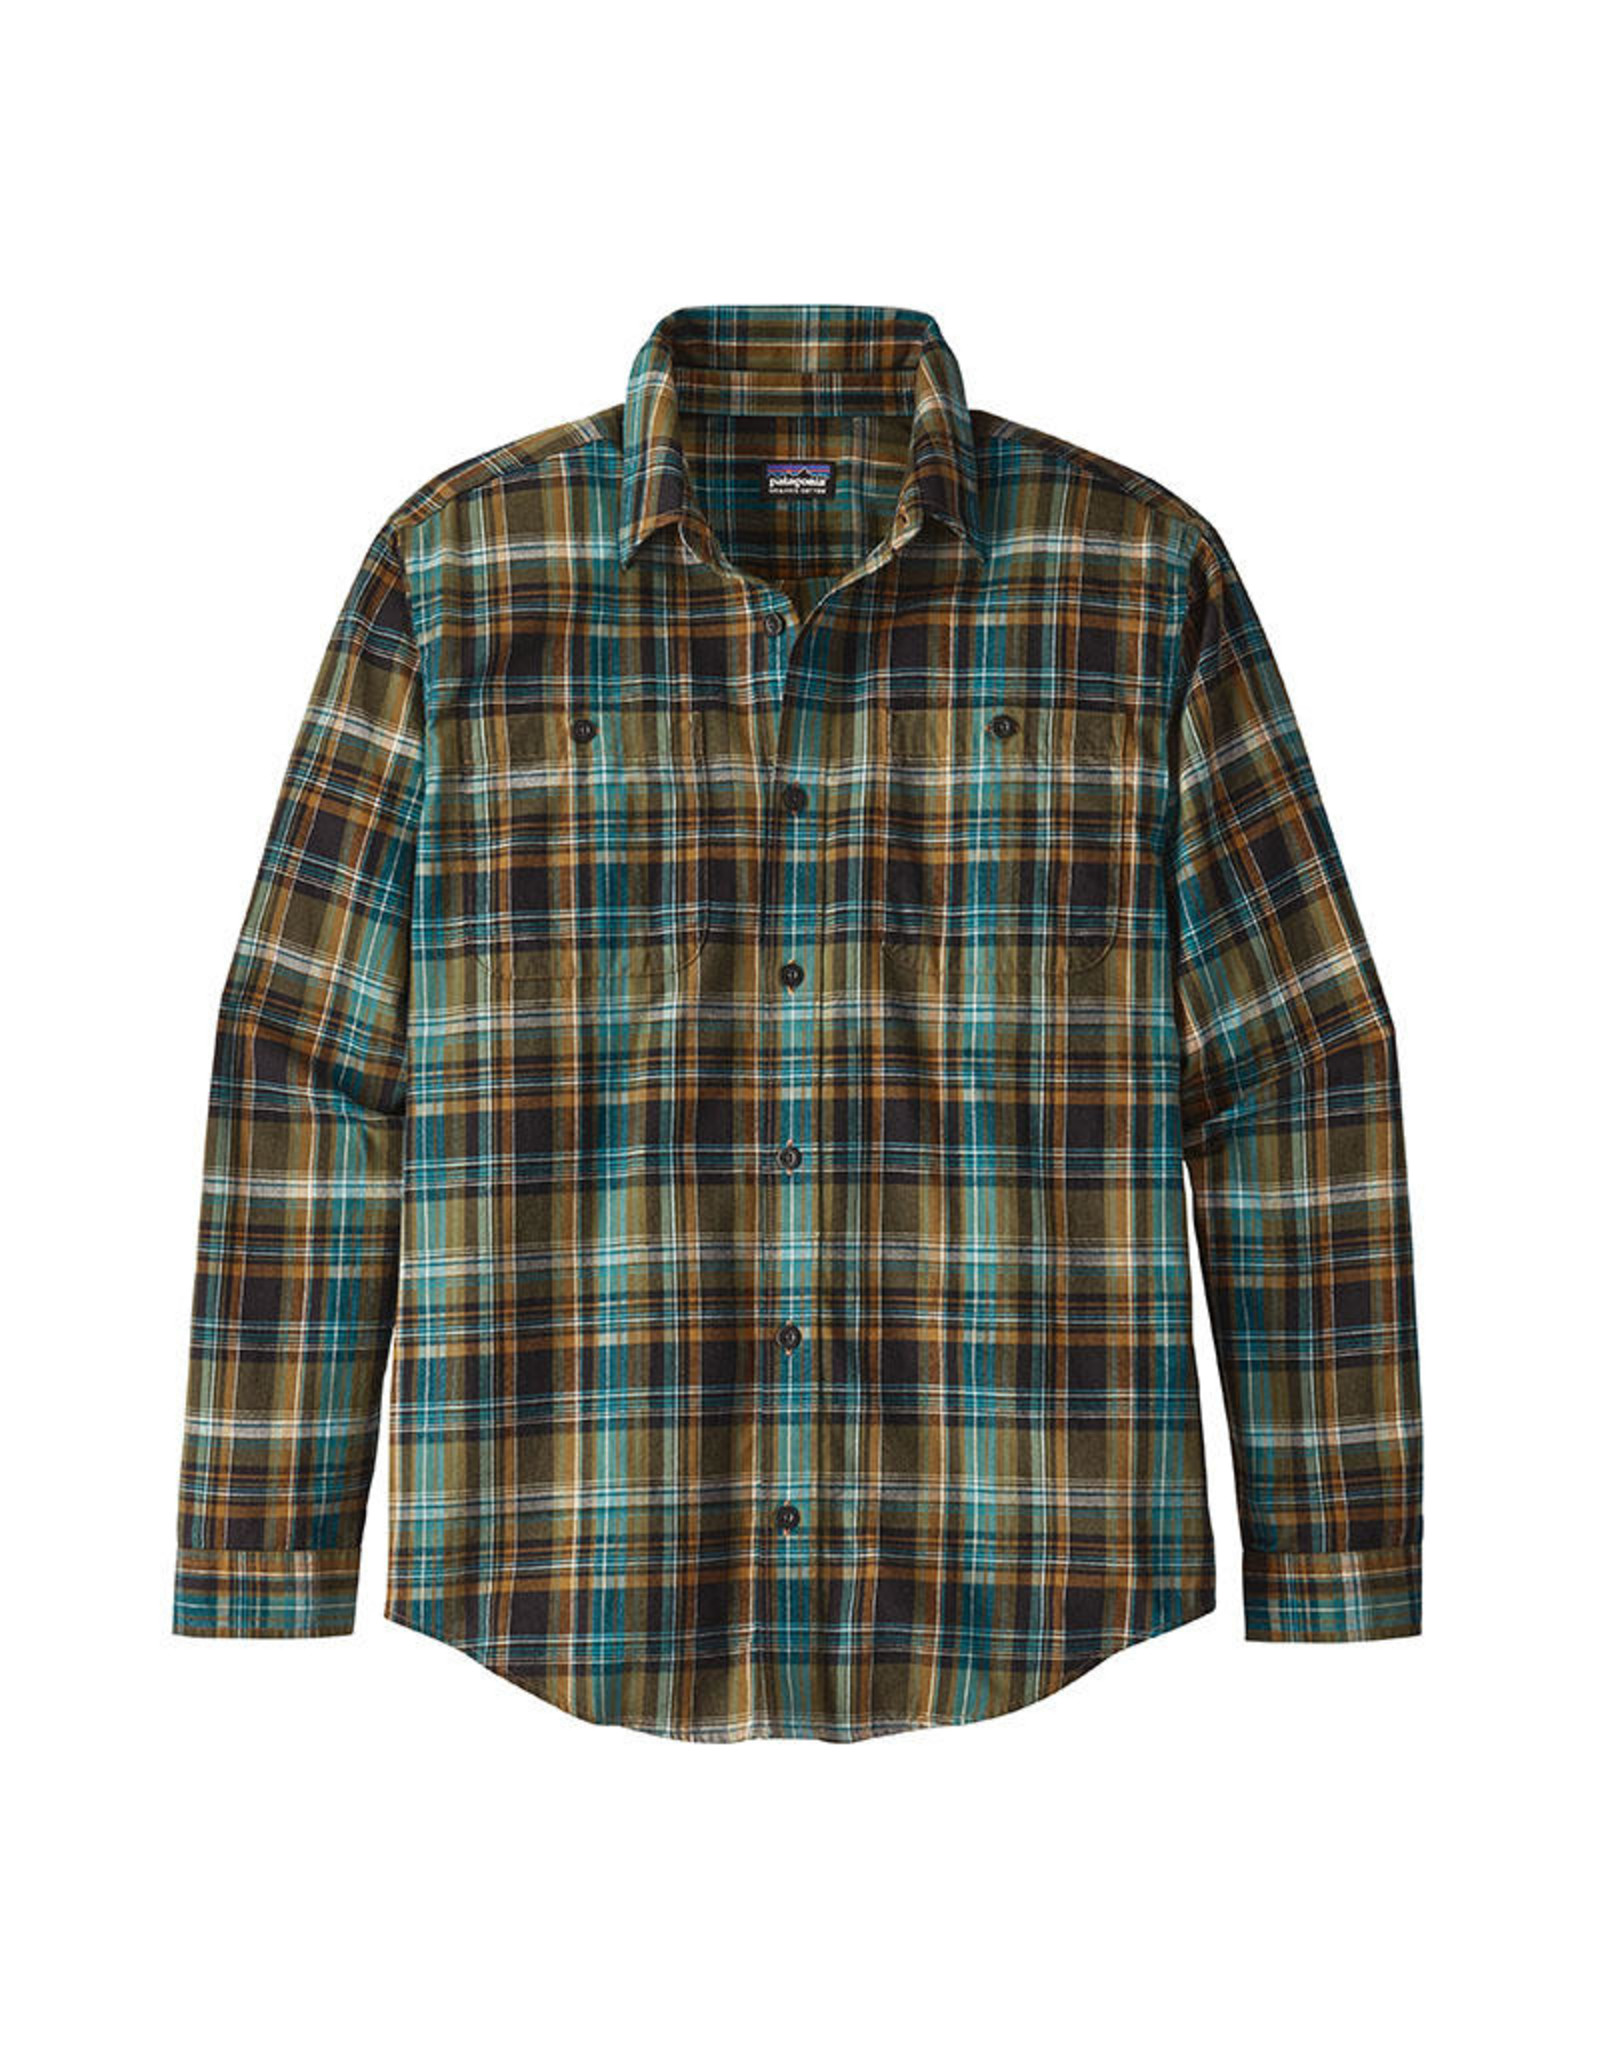 Patagonia Patagonia Men's Long Sleeved Pima Cotton Shirt